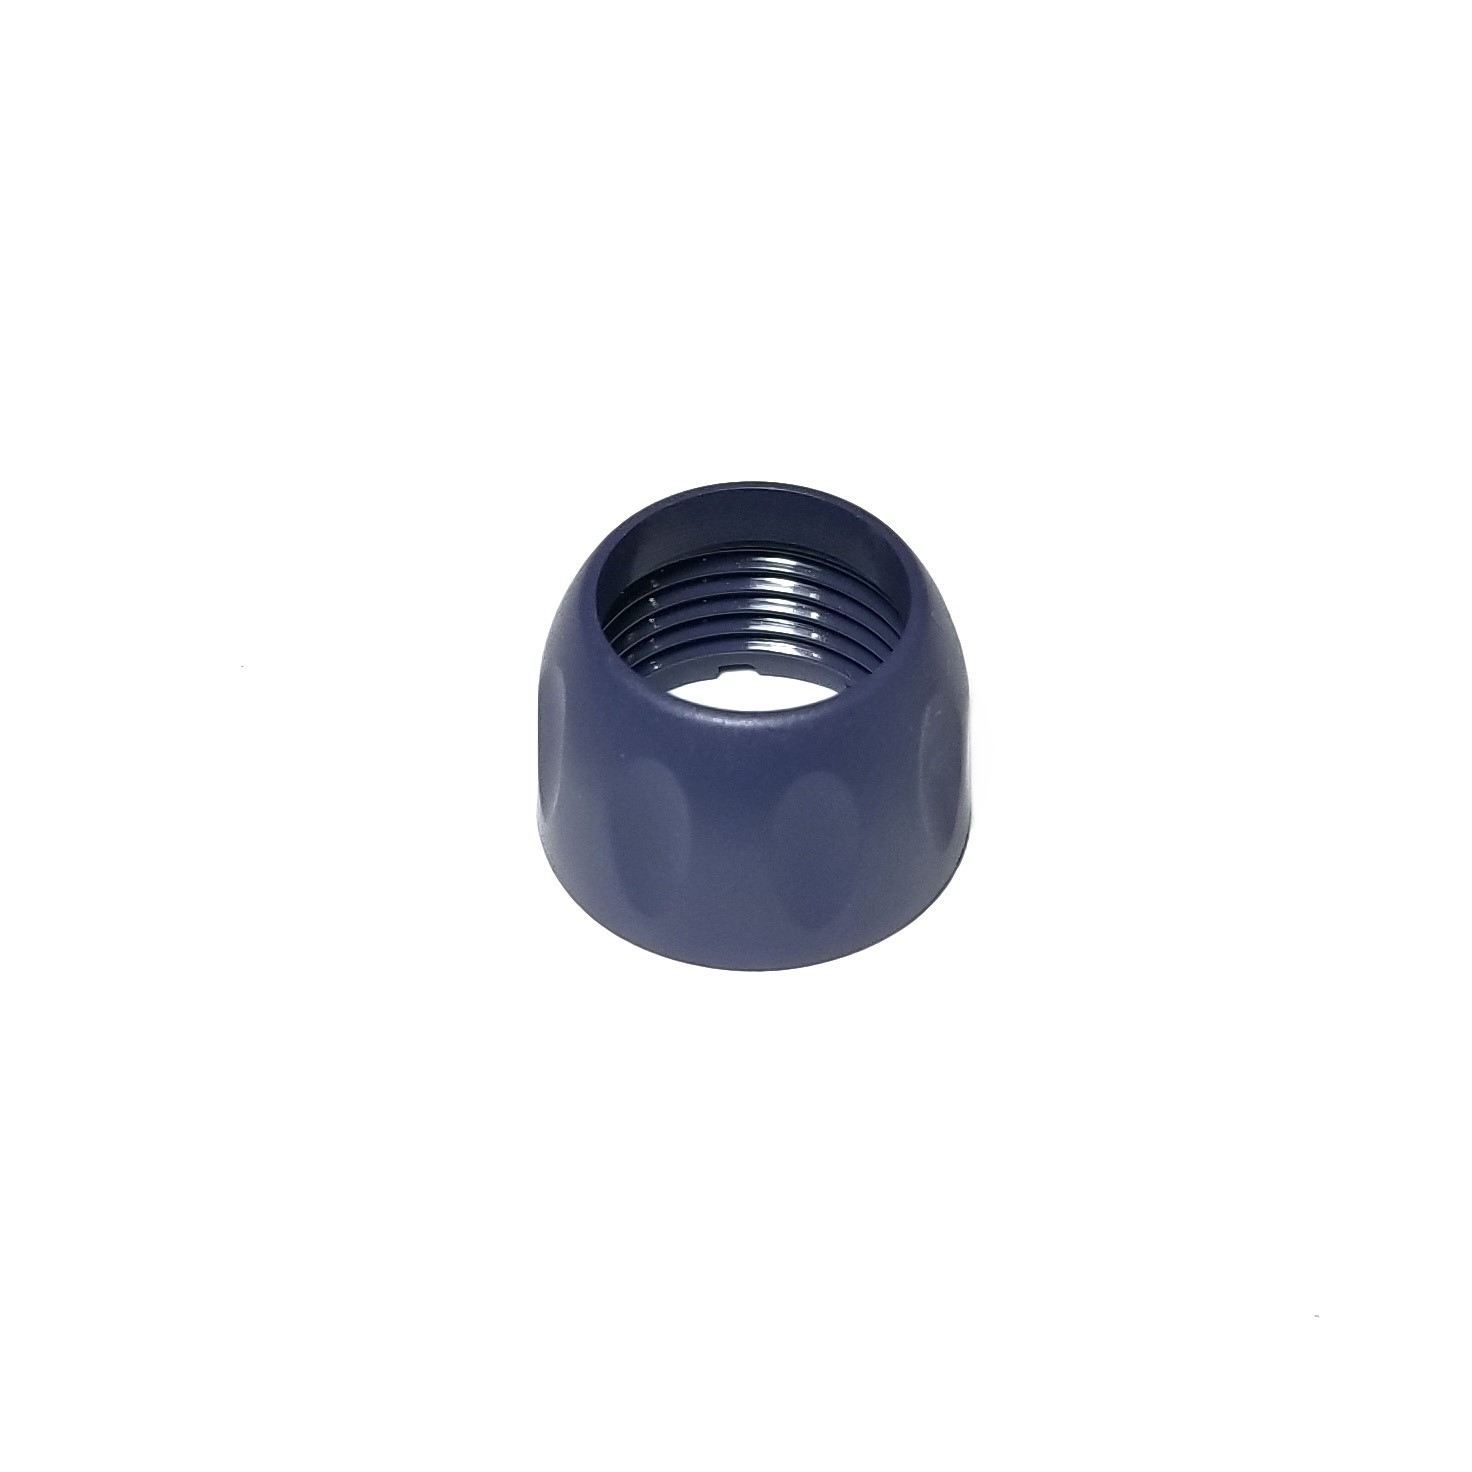 Pipet-Lite Shaft Coupling Nut, Single Channel, L, SL, 2-1000μL (Rainin)